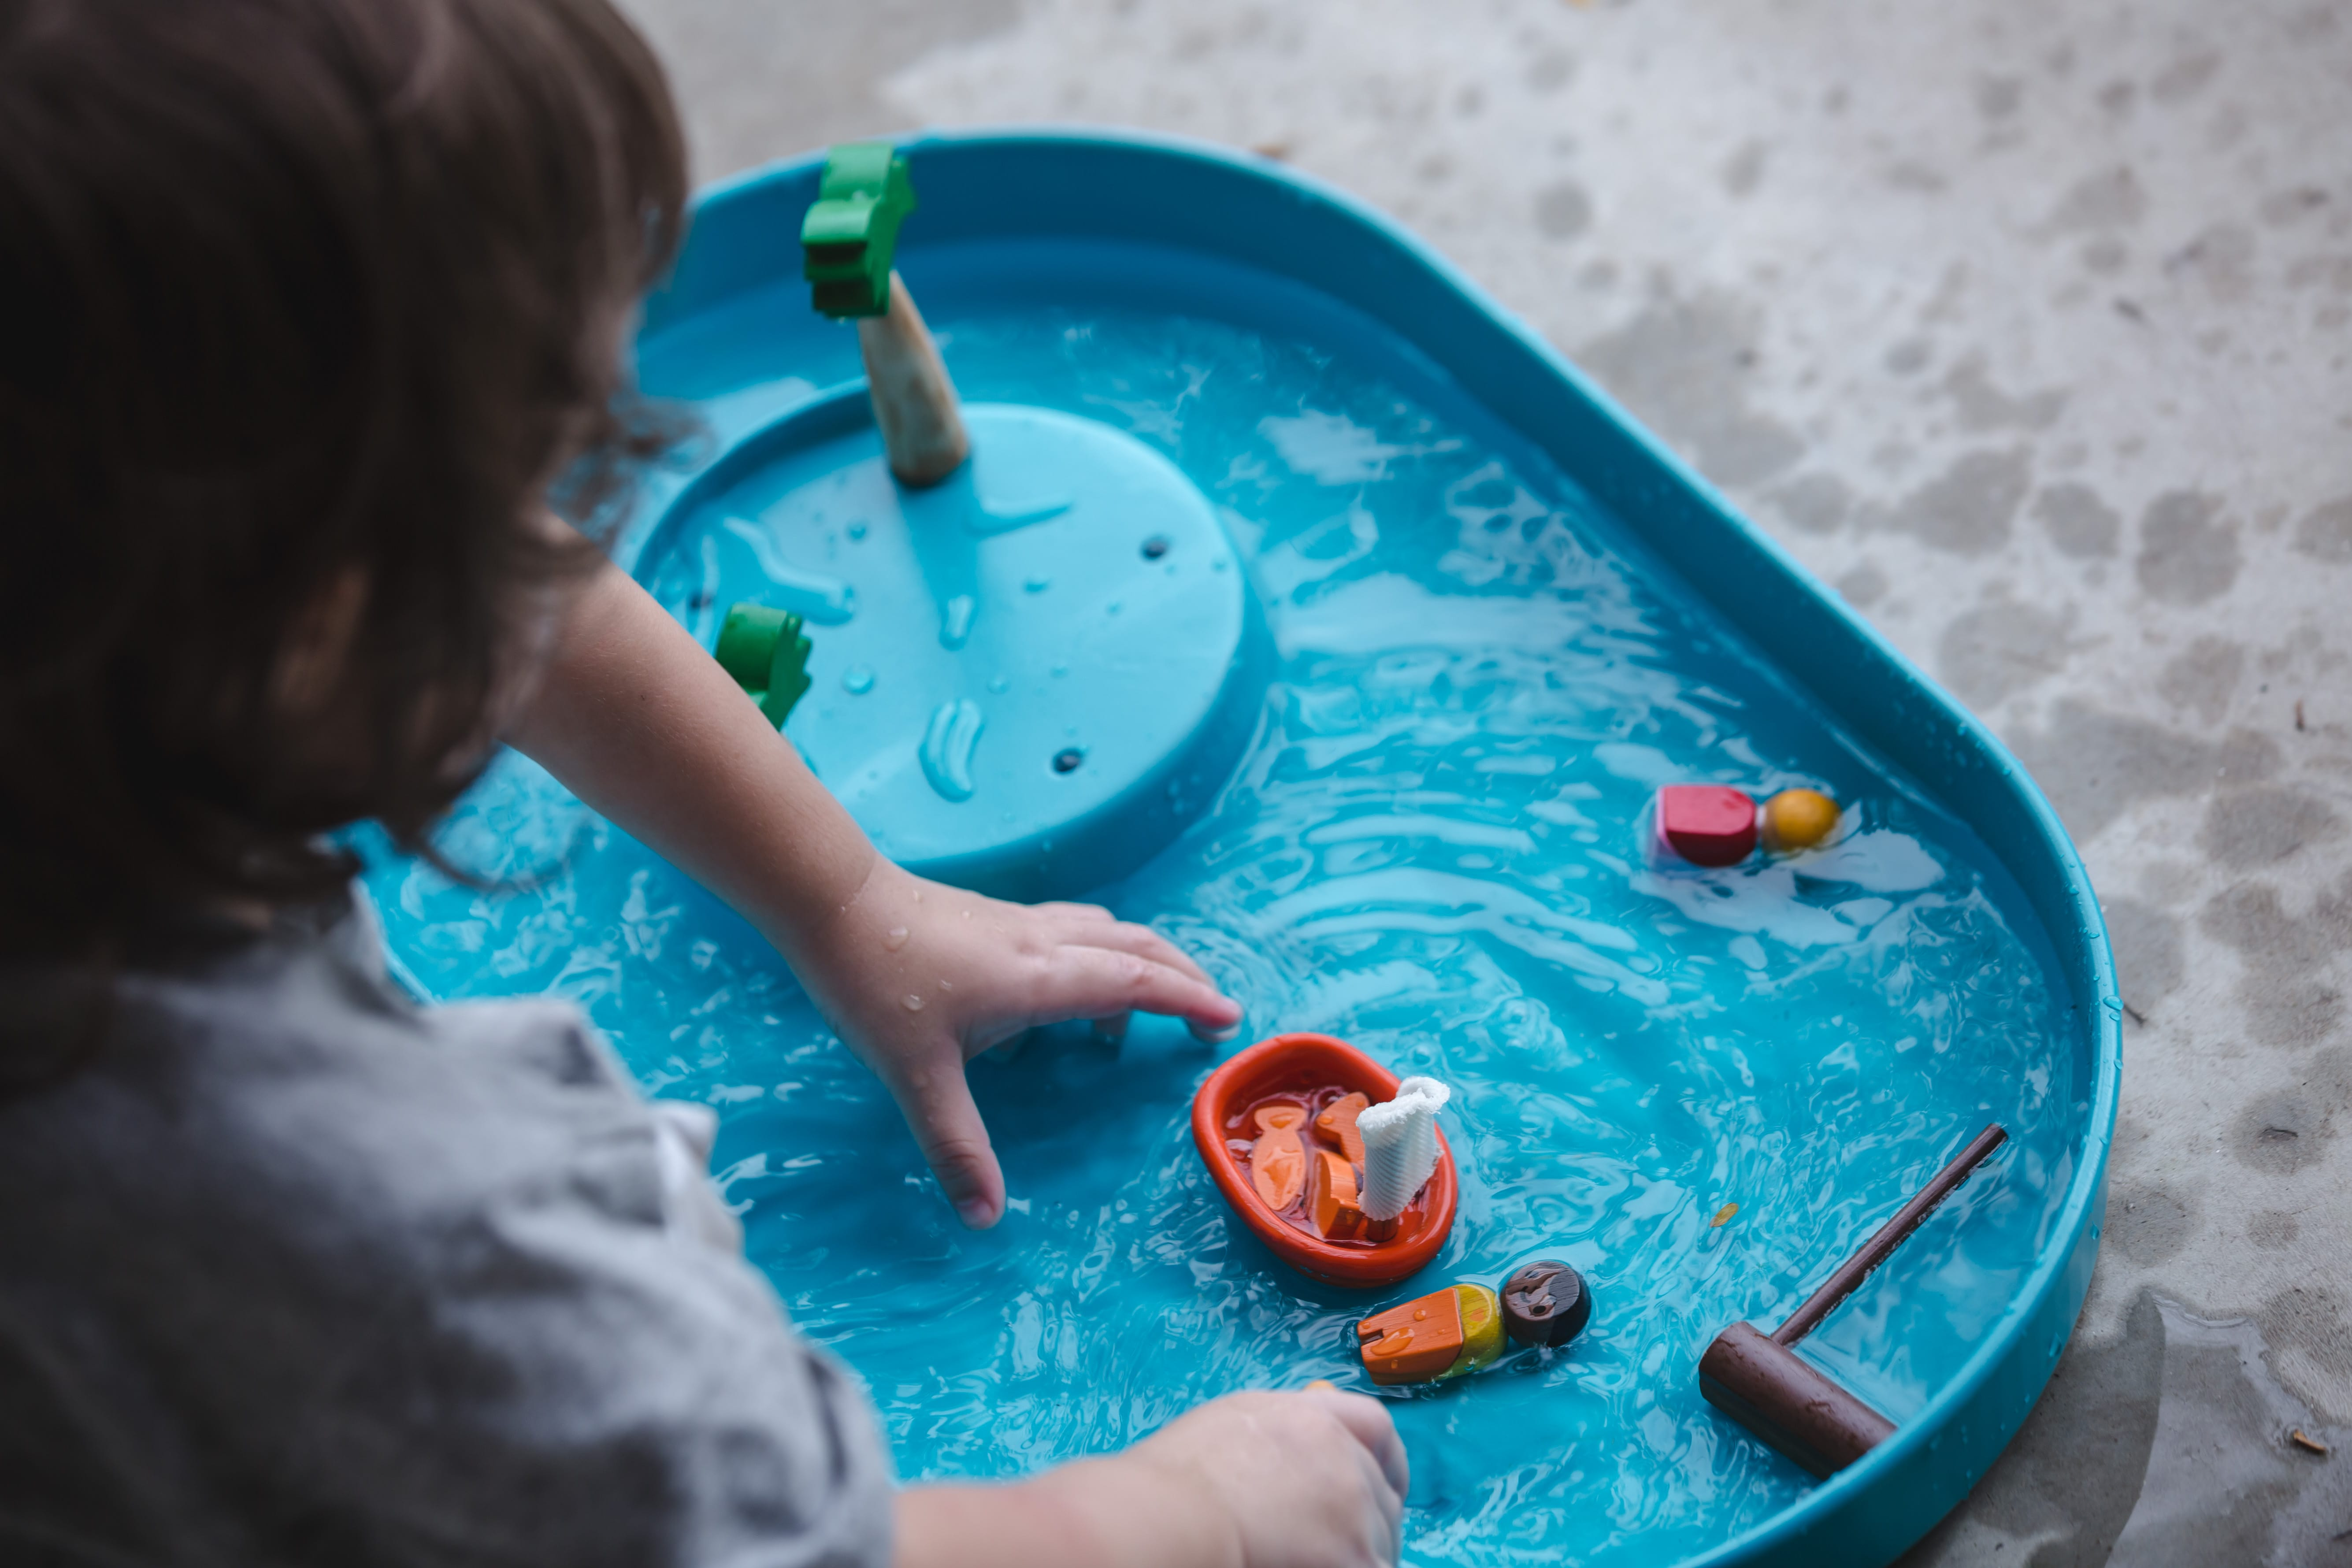 5801_PlanToys_WATER_PLAY_SET_Water_Play_Coordination_Creative_Explore_Fine_Motor_Imagination_3yrs_Wooden_toys_Education_toys_Safety_Toys_Non-toxic_6.jpg